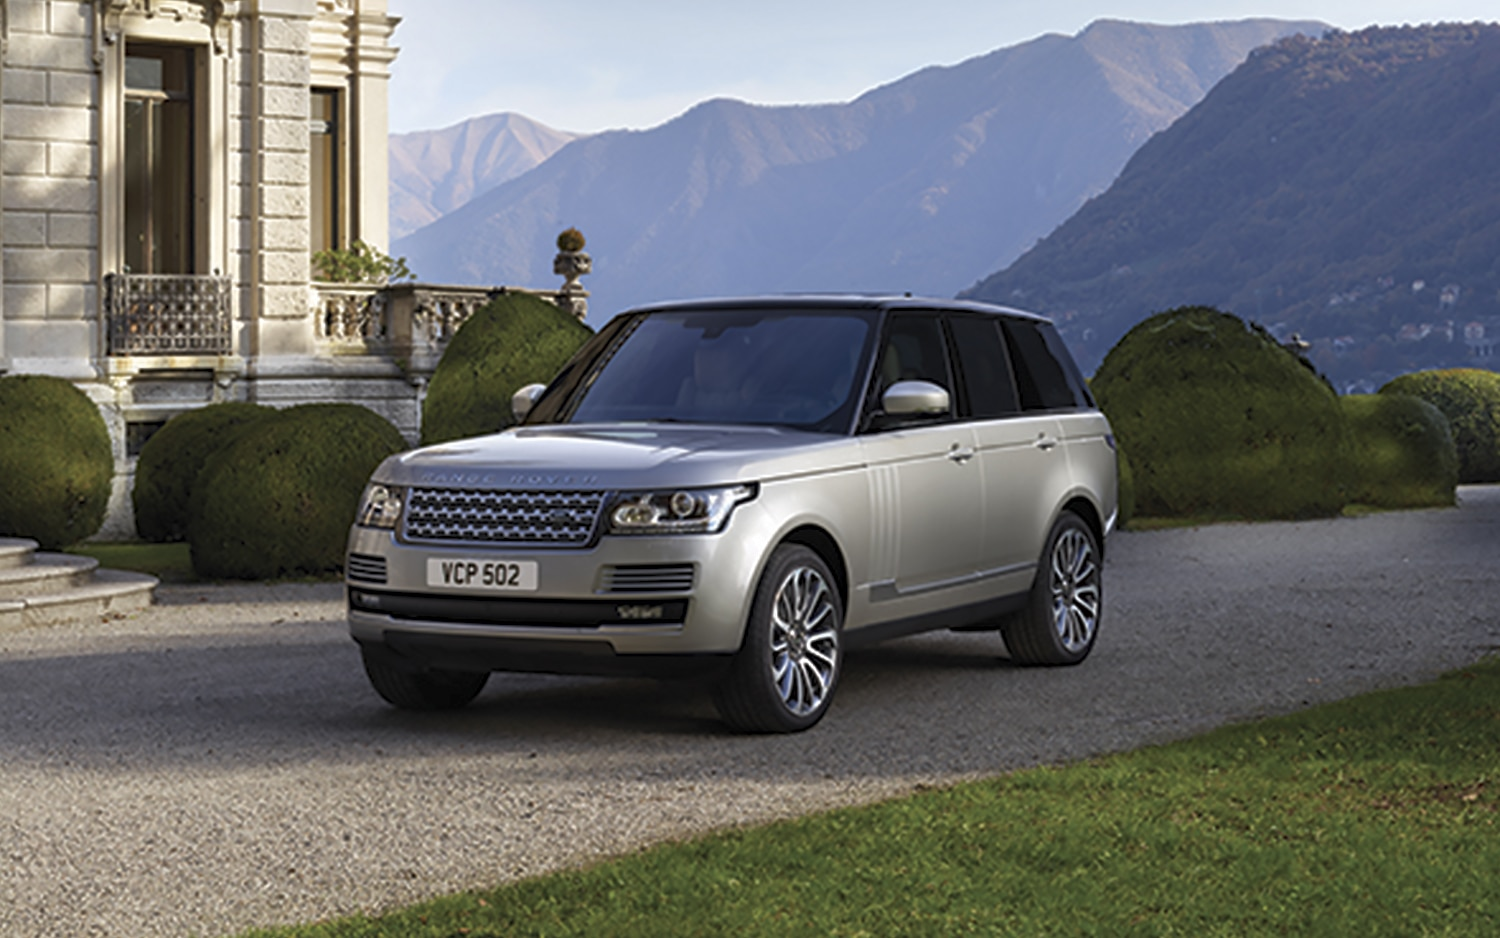 Infinity Sign Wallpaper Hd Land Rover Launches Quot Reborn Quot Program For Range Rover